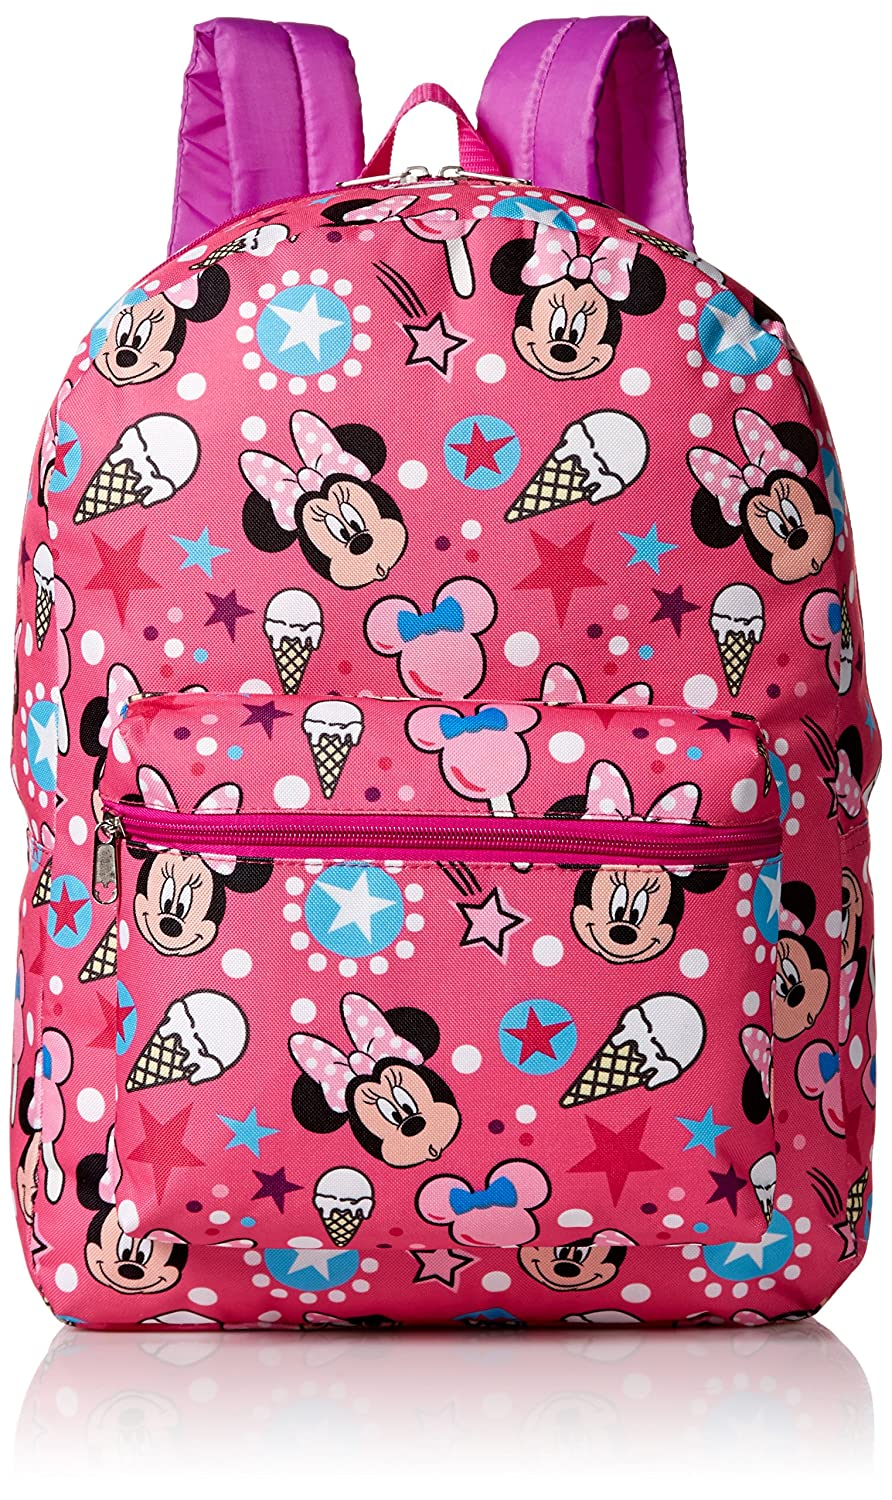 Girls' Pink Minnie Mouse Backpack